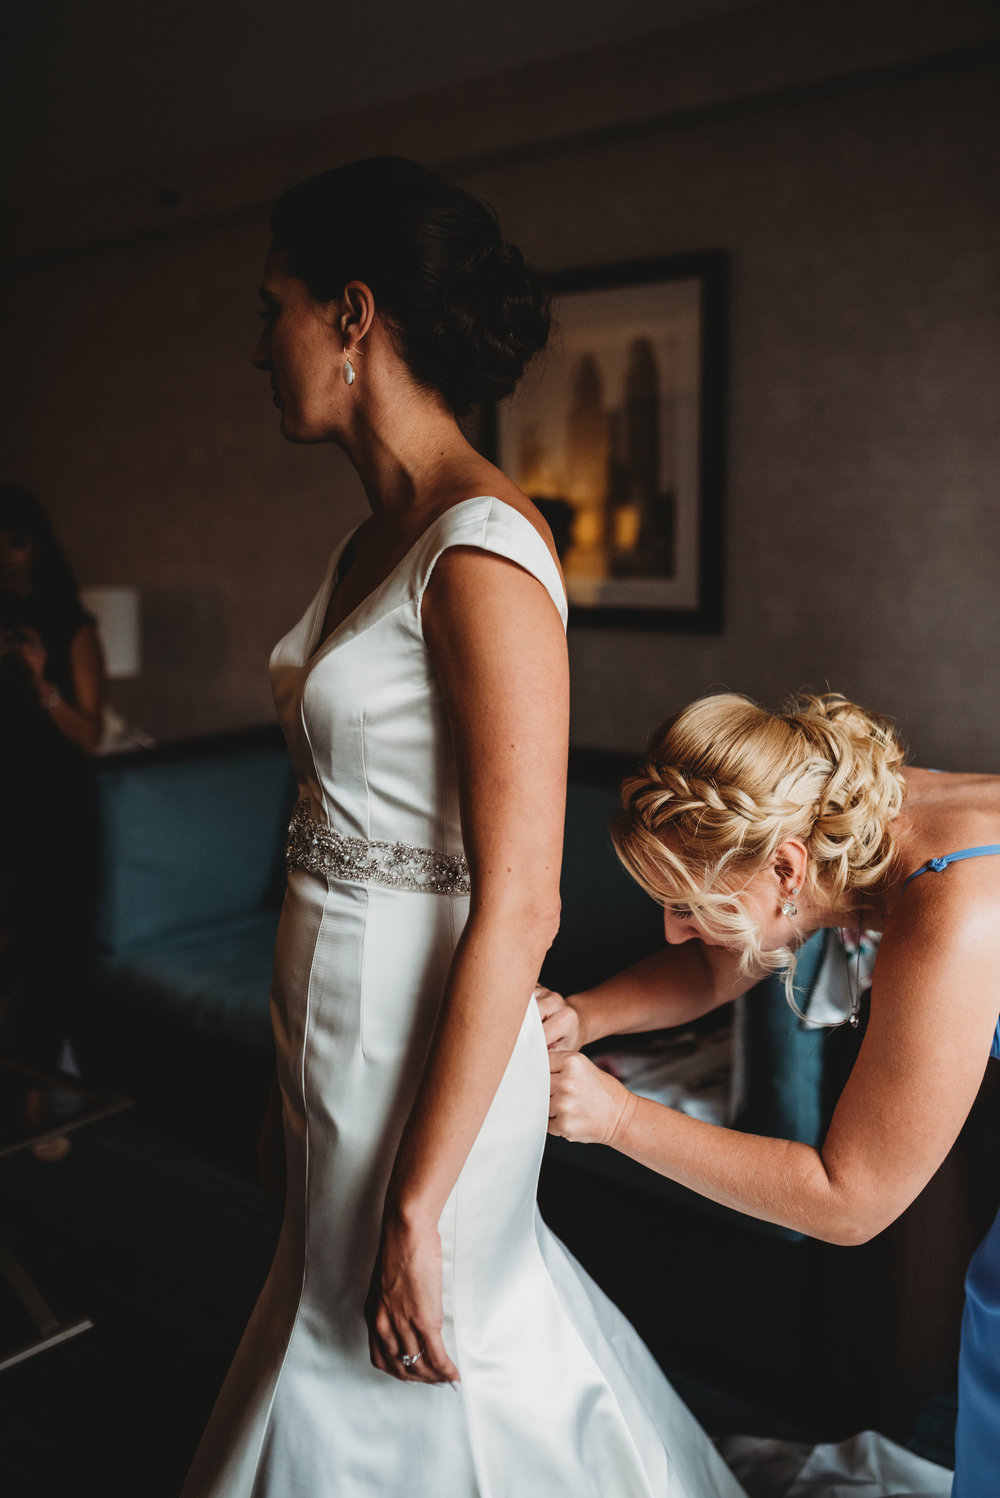 bride-getting-dress-on-getting-ready-pictures-eglington-grand-wedding-by-willow-birch-photo-toronto-documentary-wedding-photographers.jpg